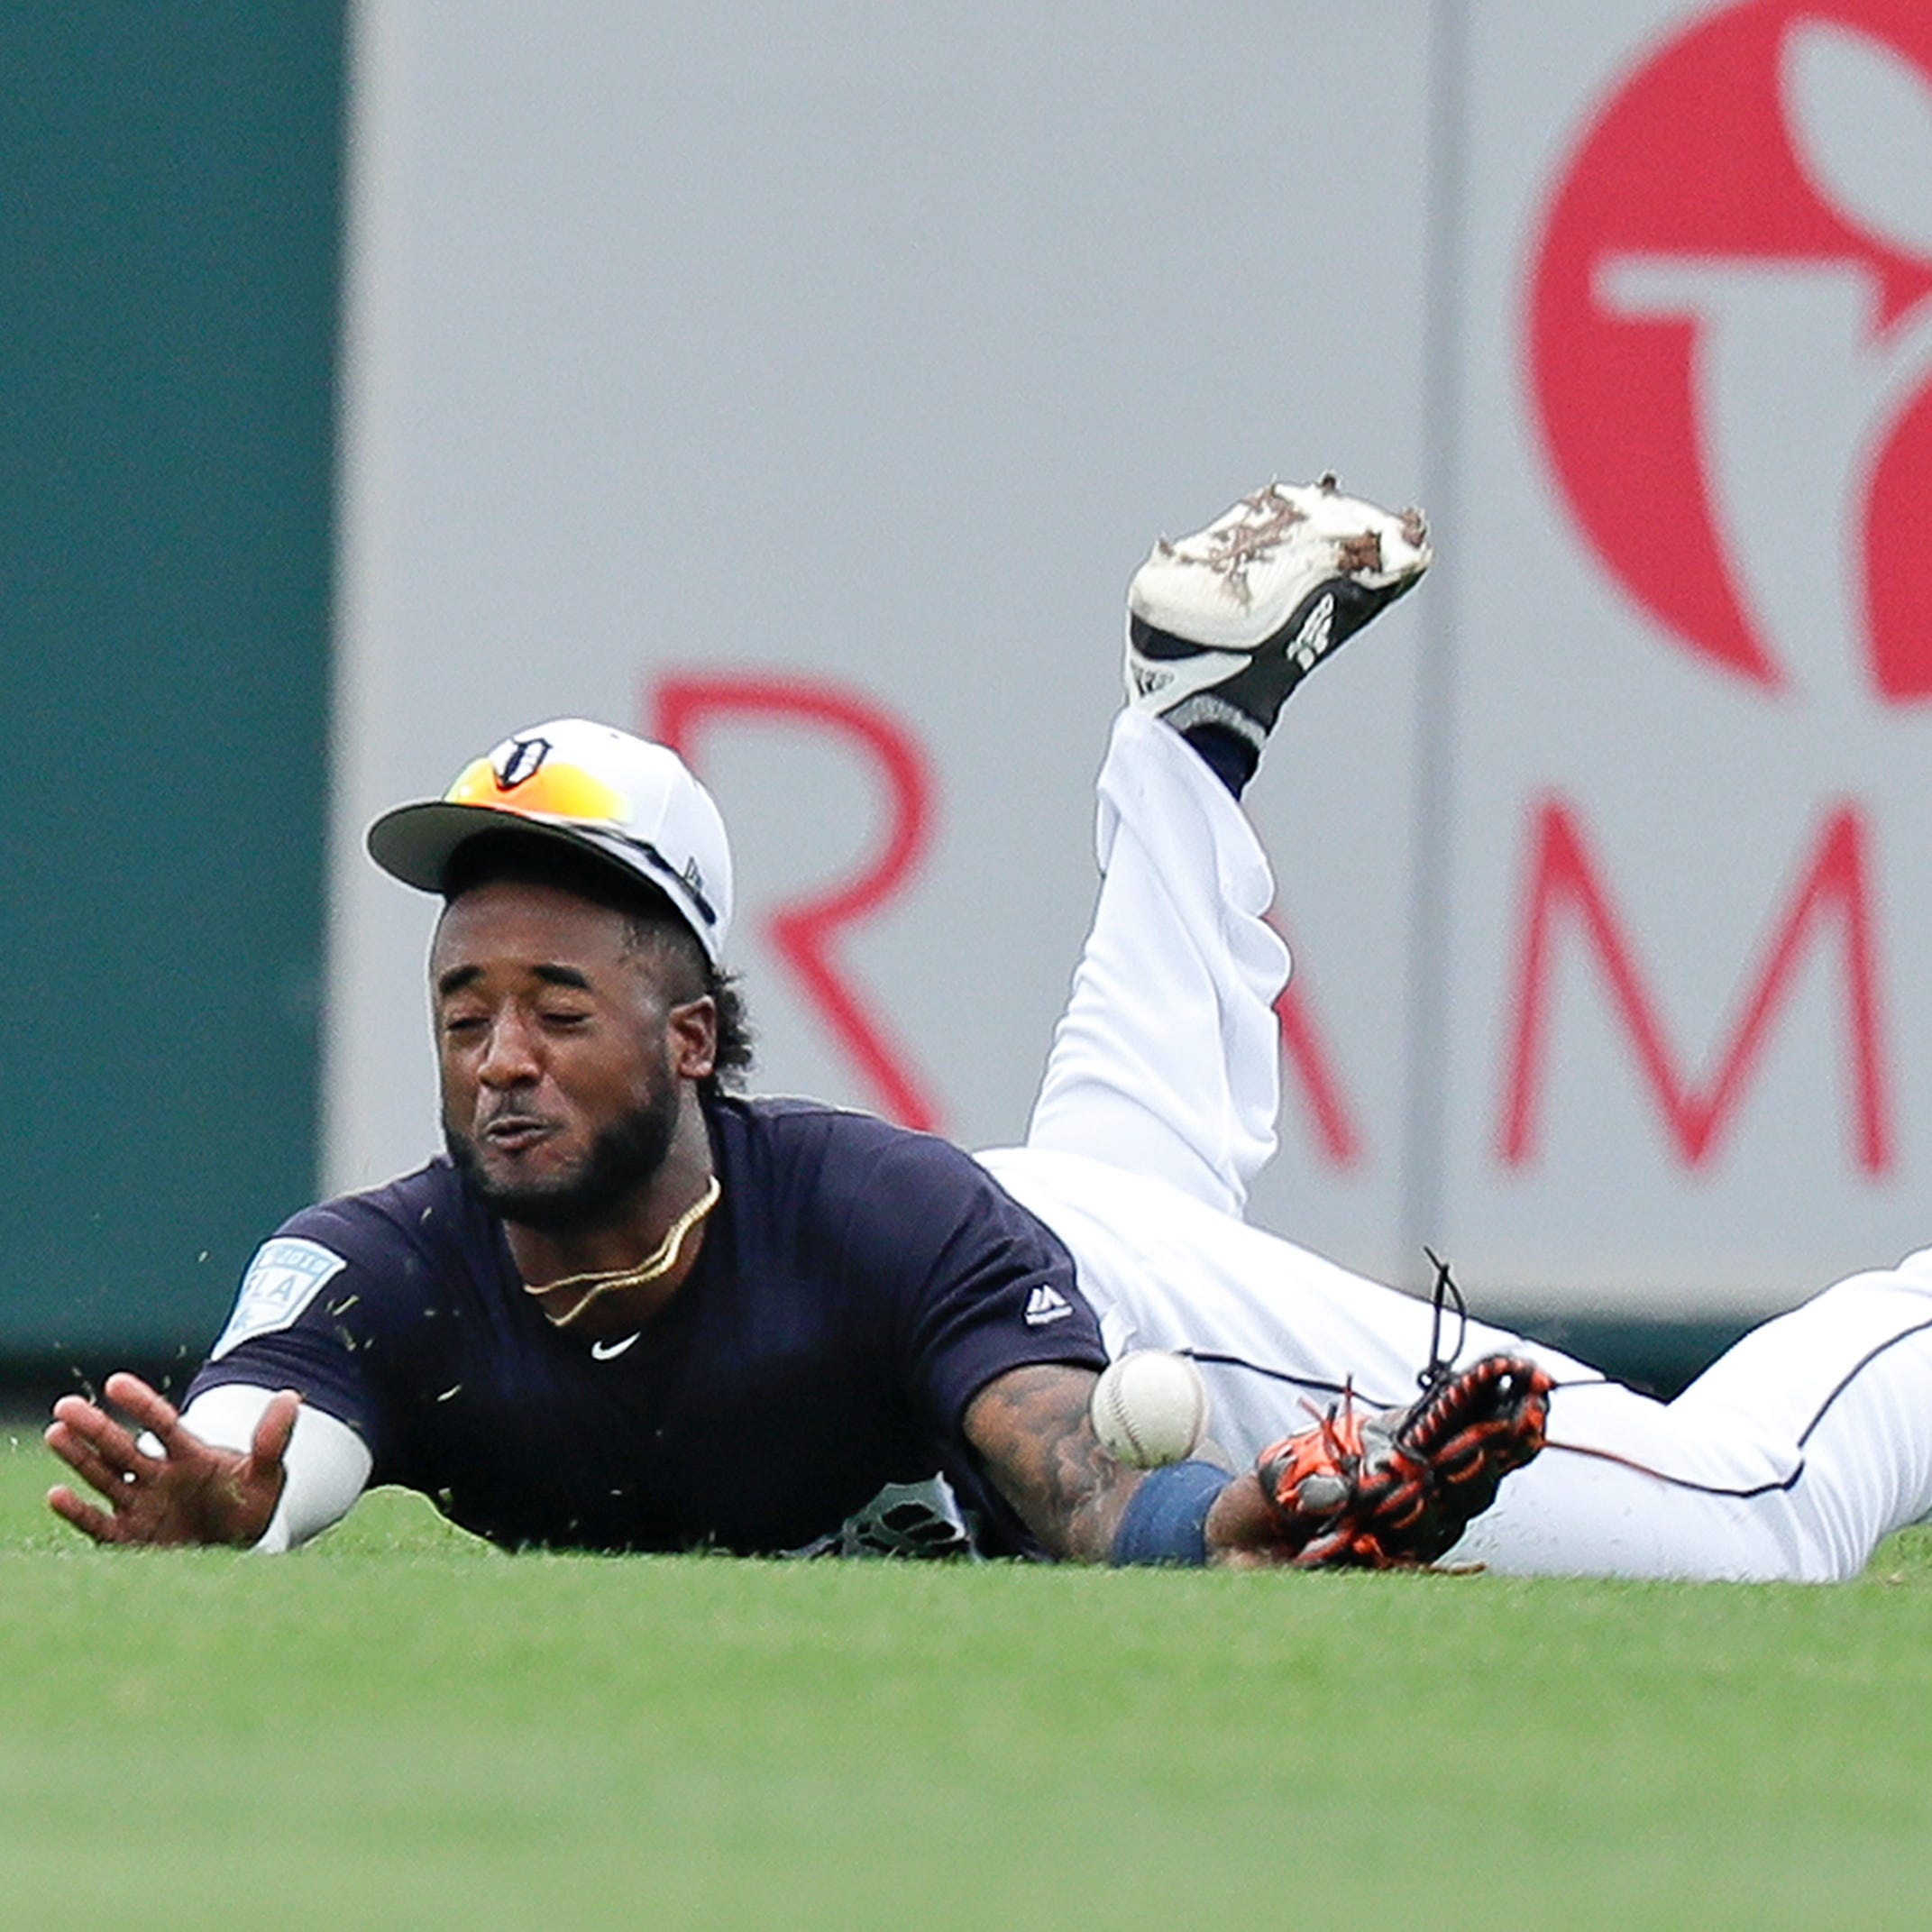 Tigers serious about adding center field to Niko Goodrum's resume